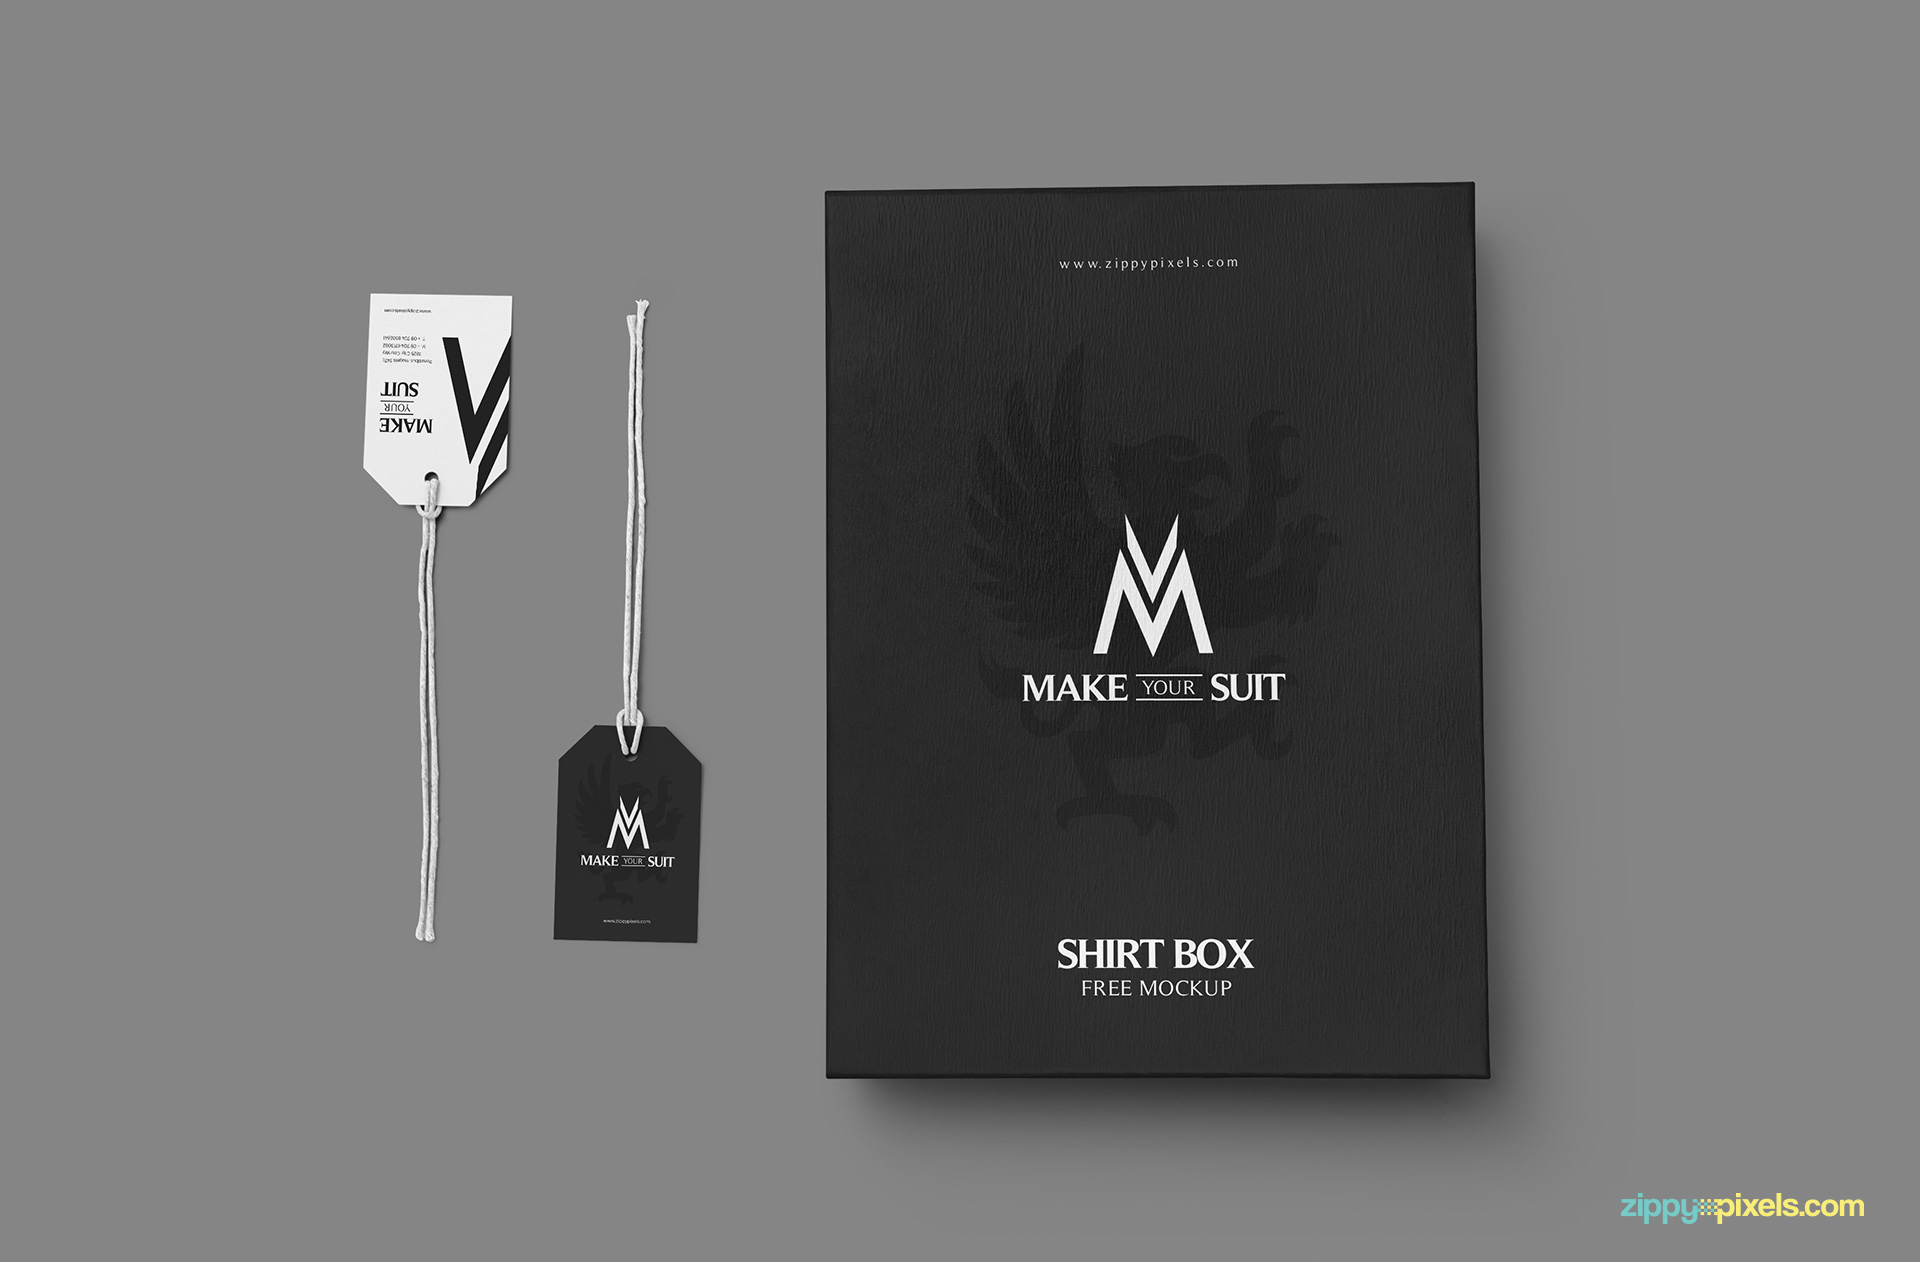 Free product packaging mockup.